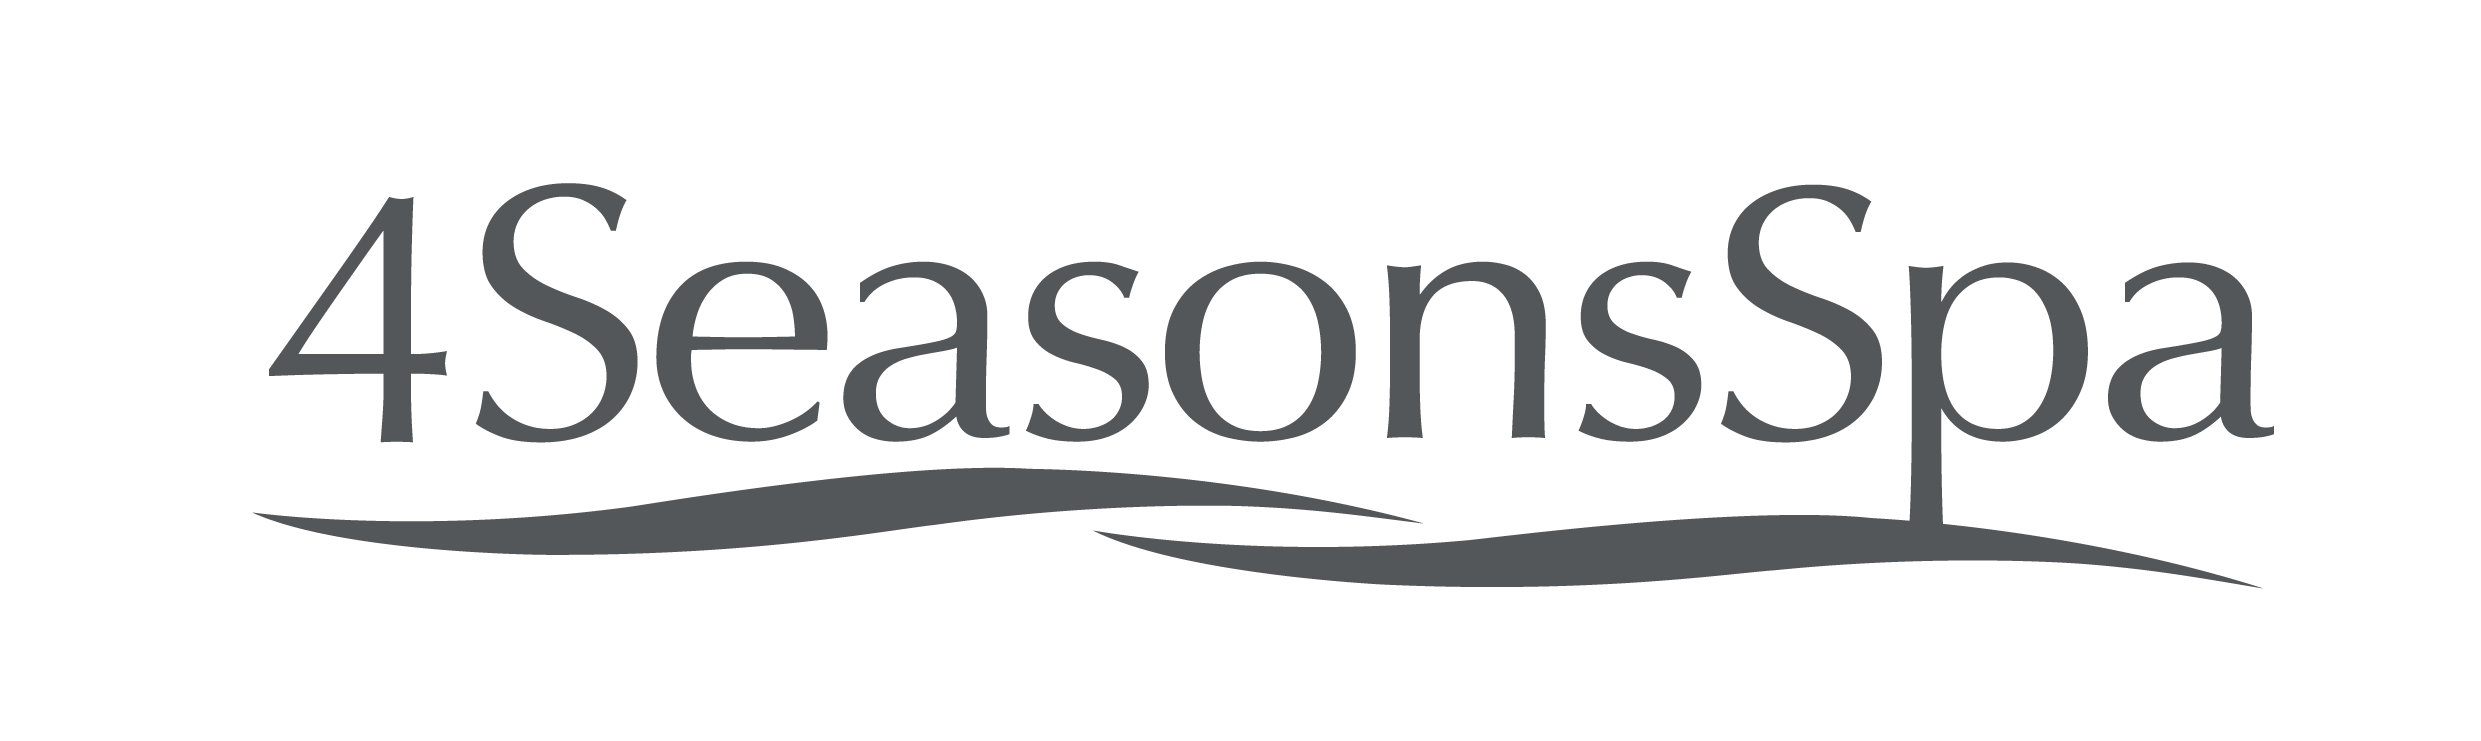 4 seasons spa